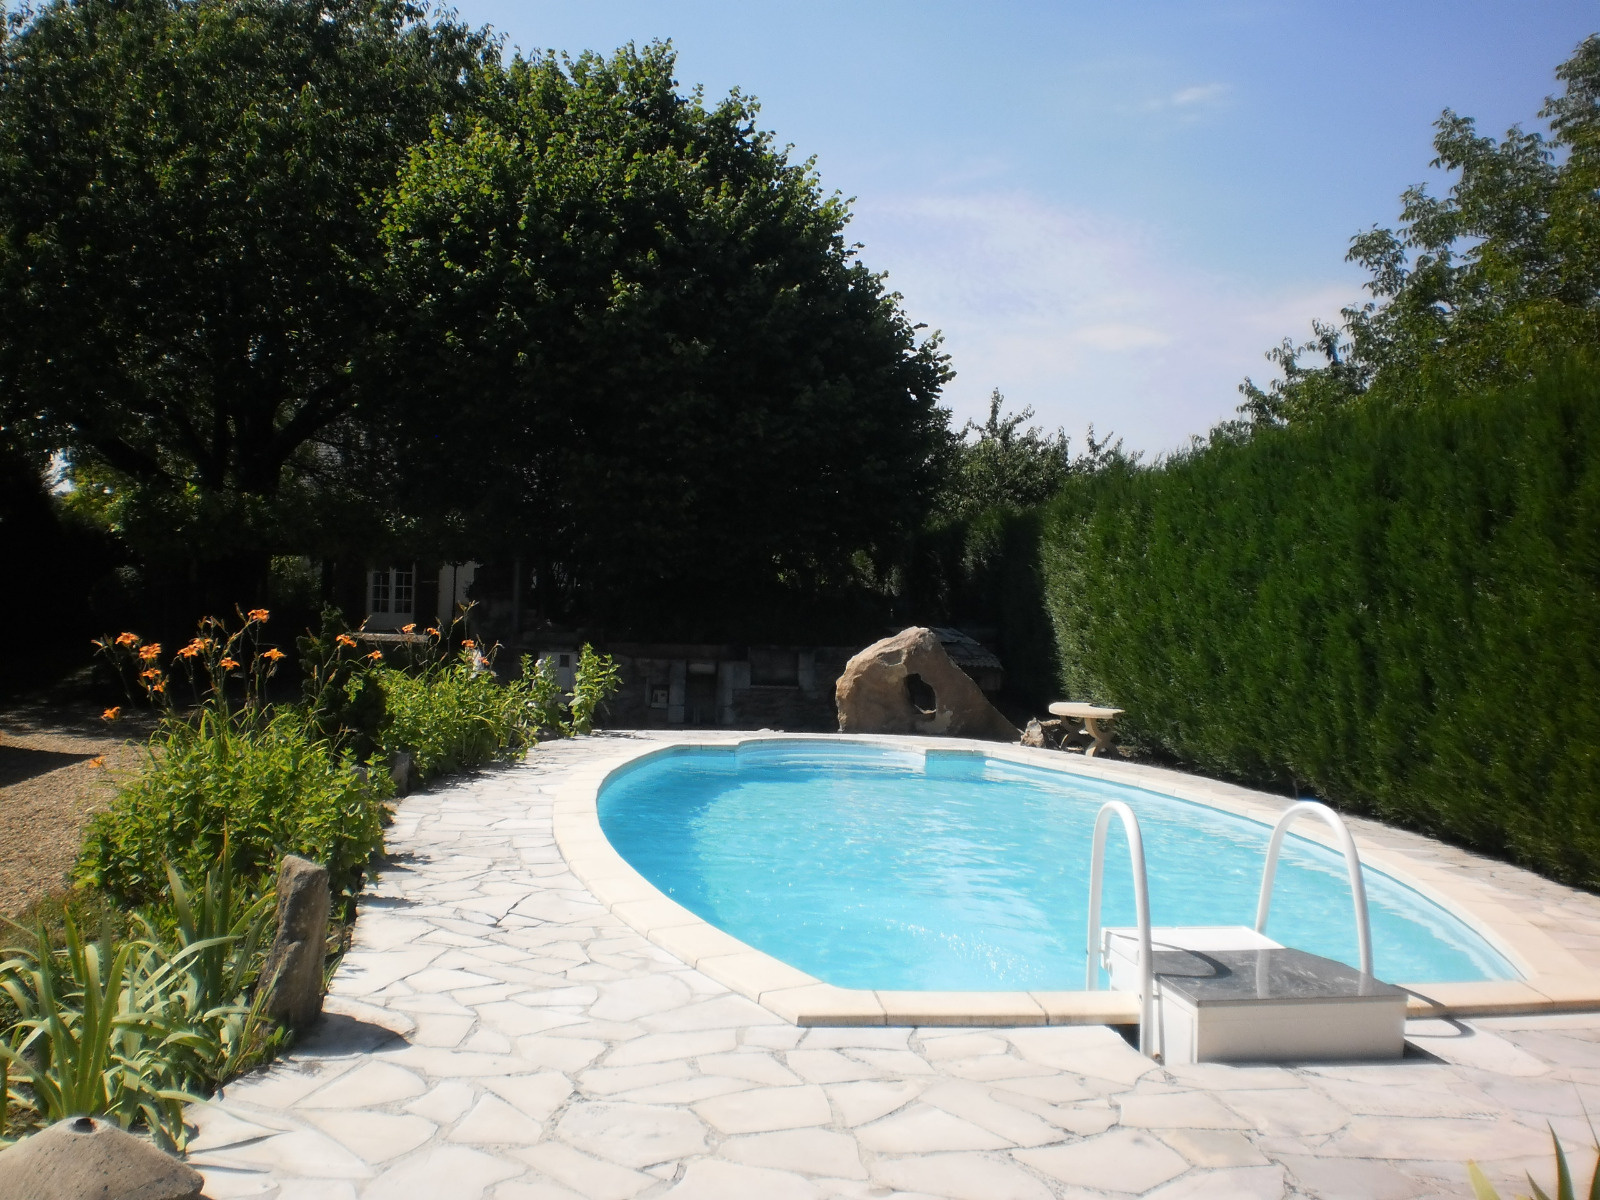 Vente immobilier particulier cadre agr able piscine for Piscine evolutive 9